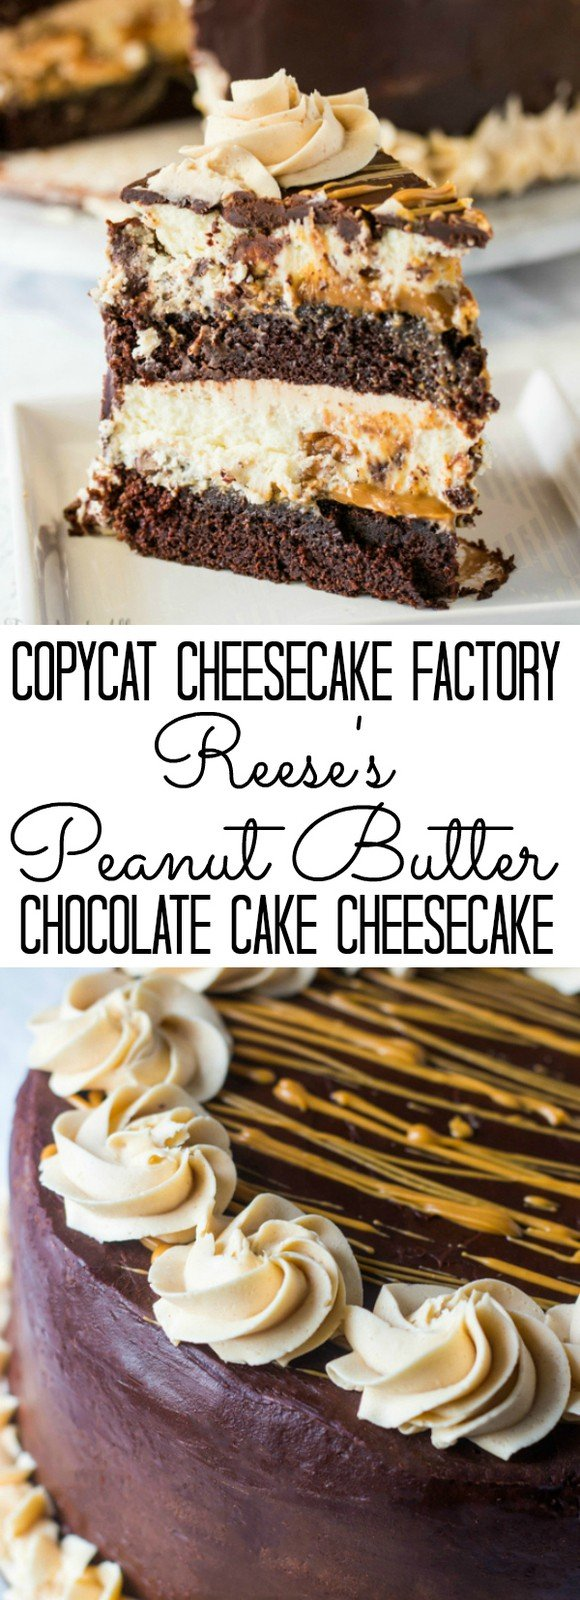 Copycat Cheesecake Factory Reese's Peanut Butter Chocolate Cake Cheesecake collage with words in the middle